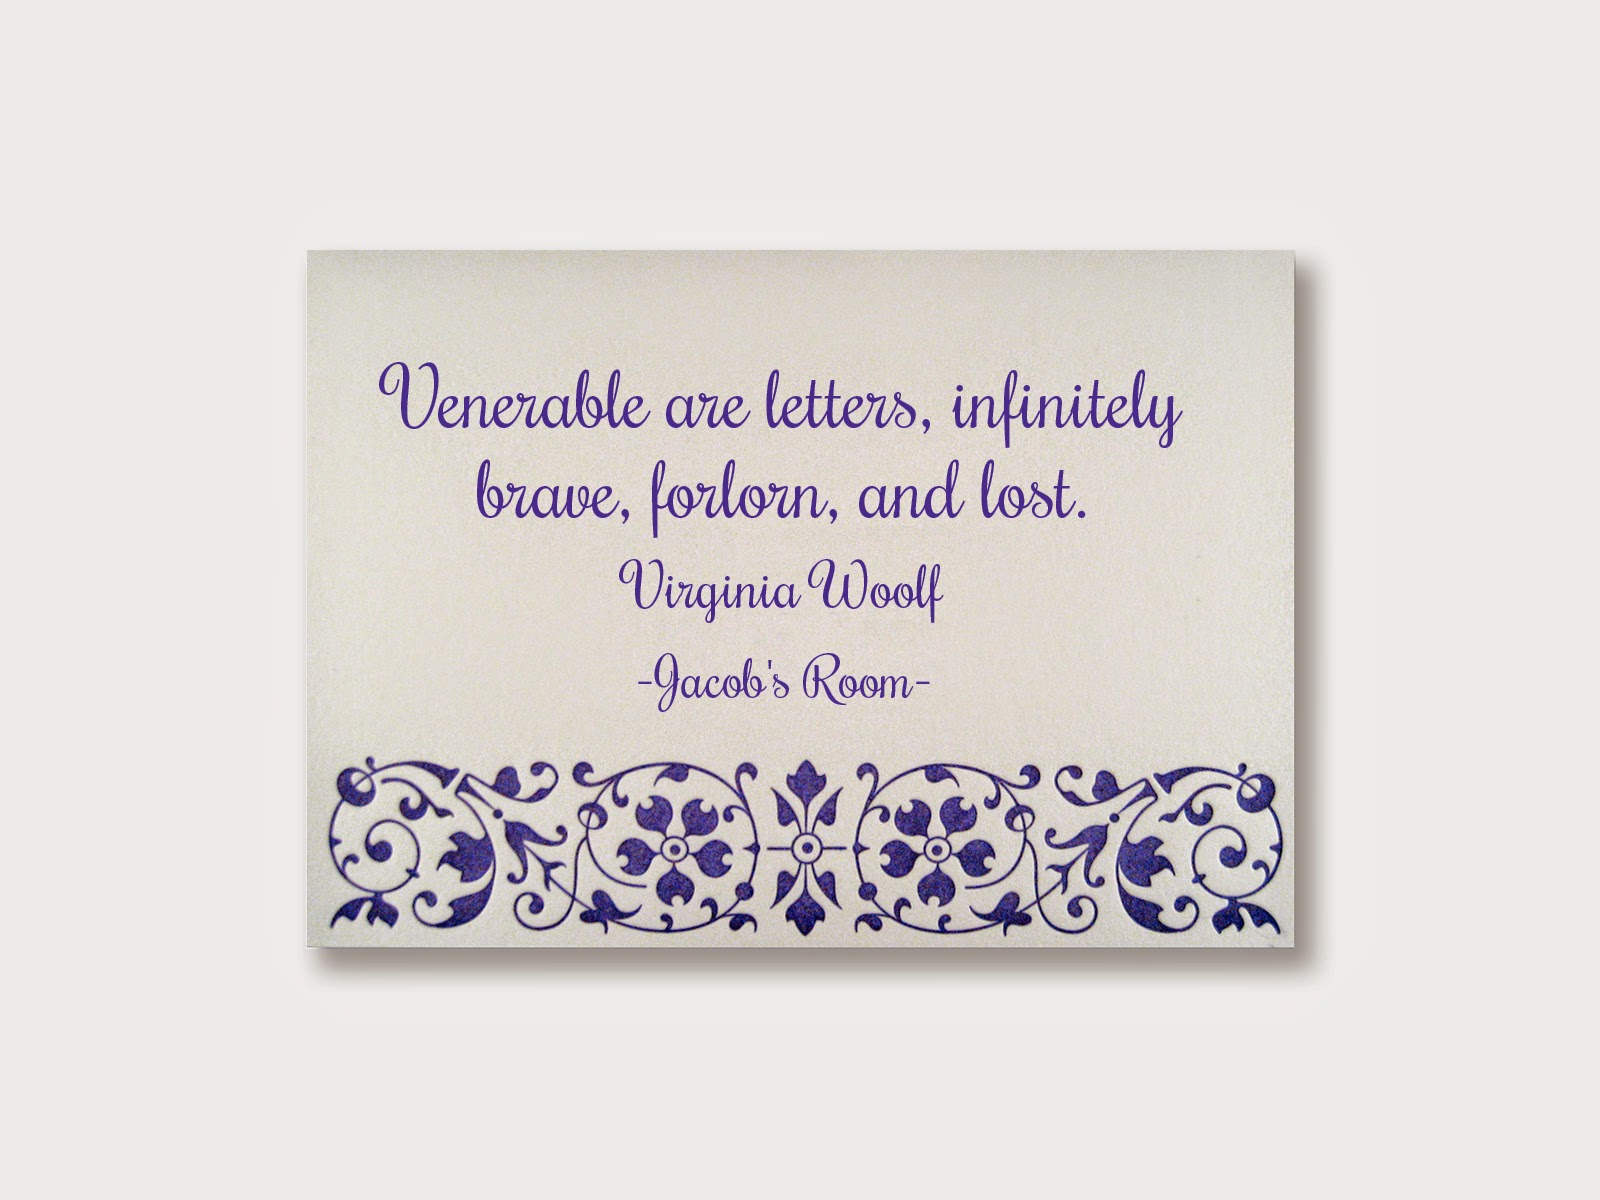 Venerable are letters, infinitely brave, forlorn, and lost. Virginia Woolf (Jacob's Room)